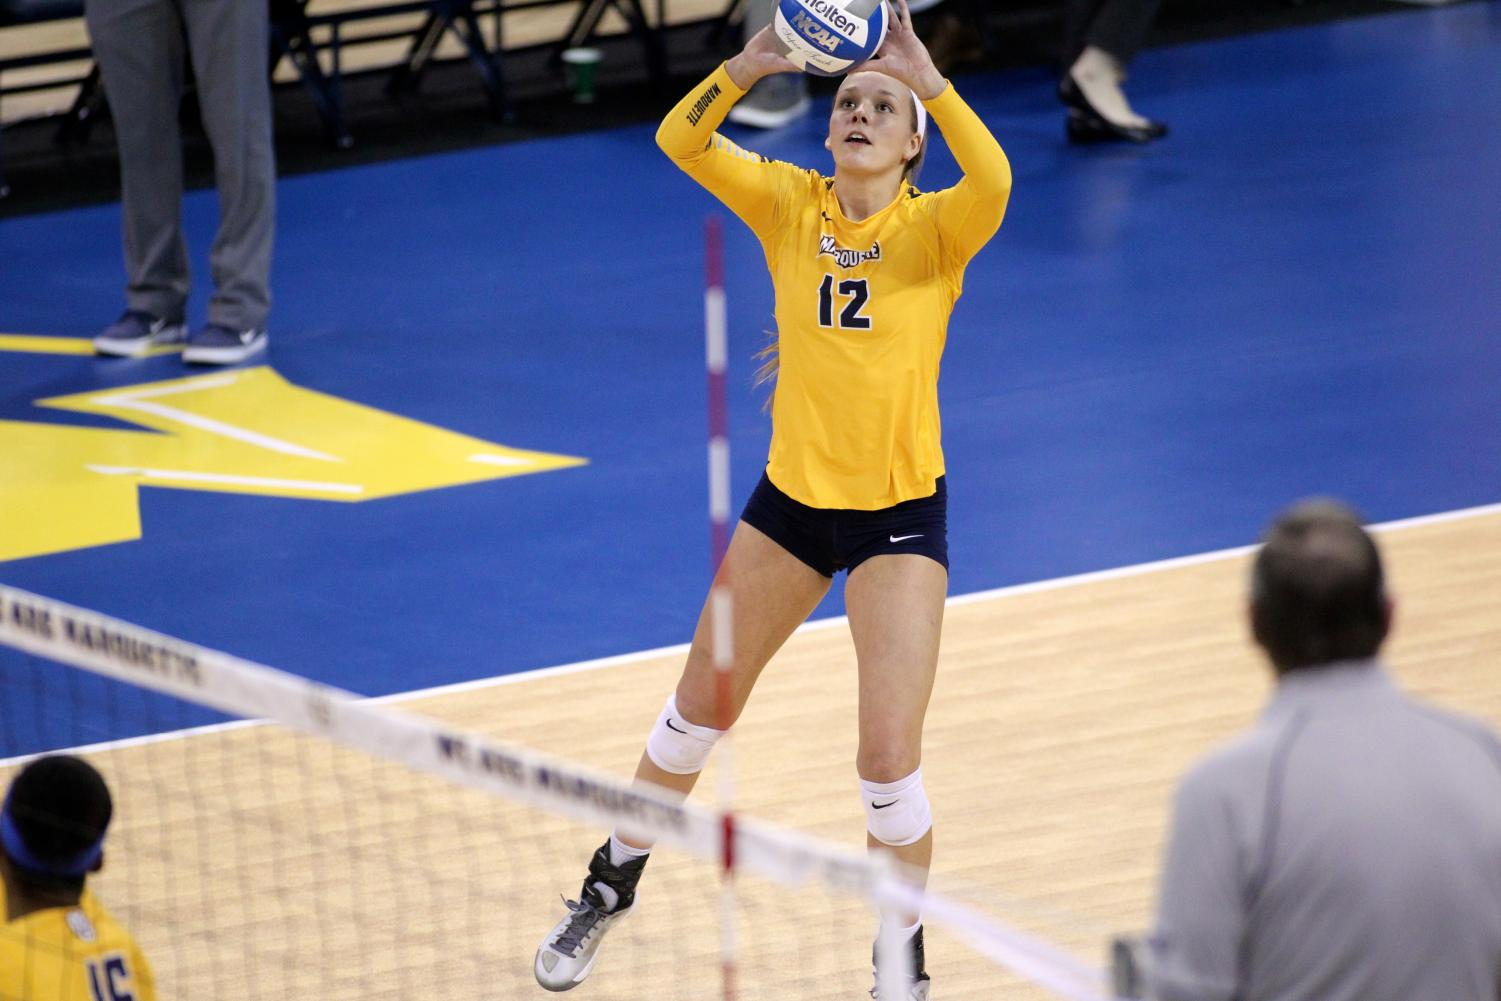 Madeline Mosher is one of five outside hitters on the 2018 roster. (Photo courtesy of Maggie Bean/Marquette Athletics)